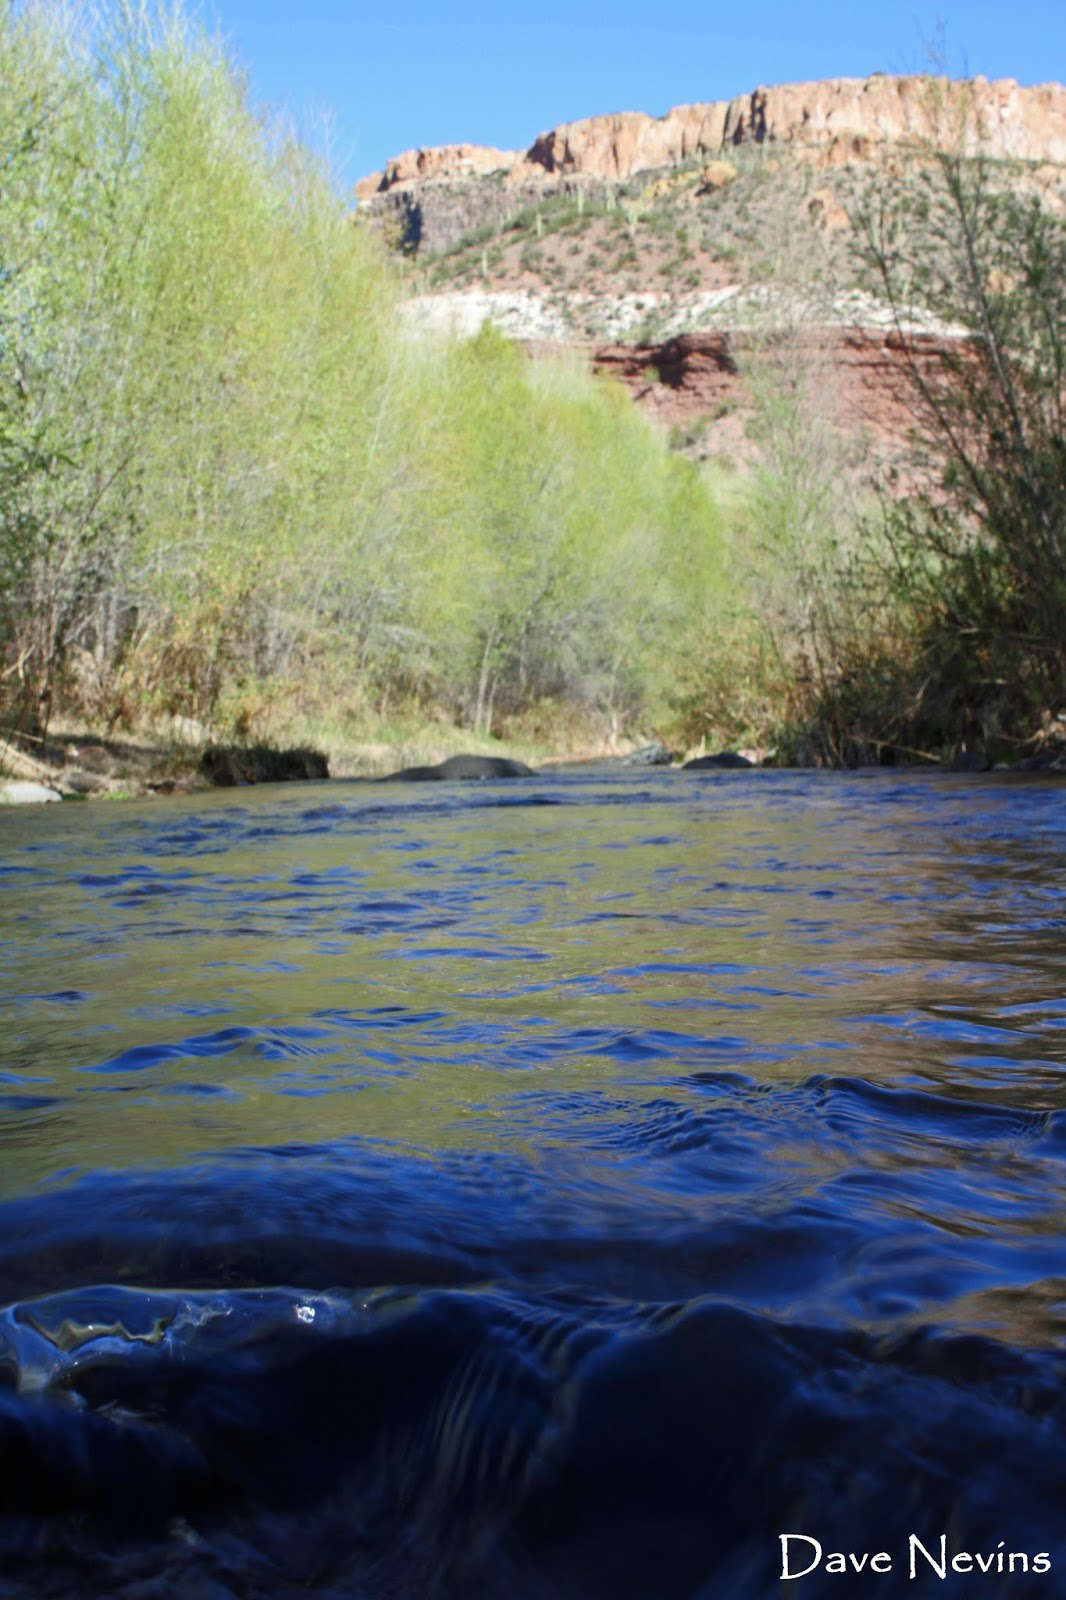 no limits aravaipa canyon a brief appearance by edward abbey the possible location of his grave i was surprised to in arizona highways that abbey was the first manager of the aravaipa preserve